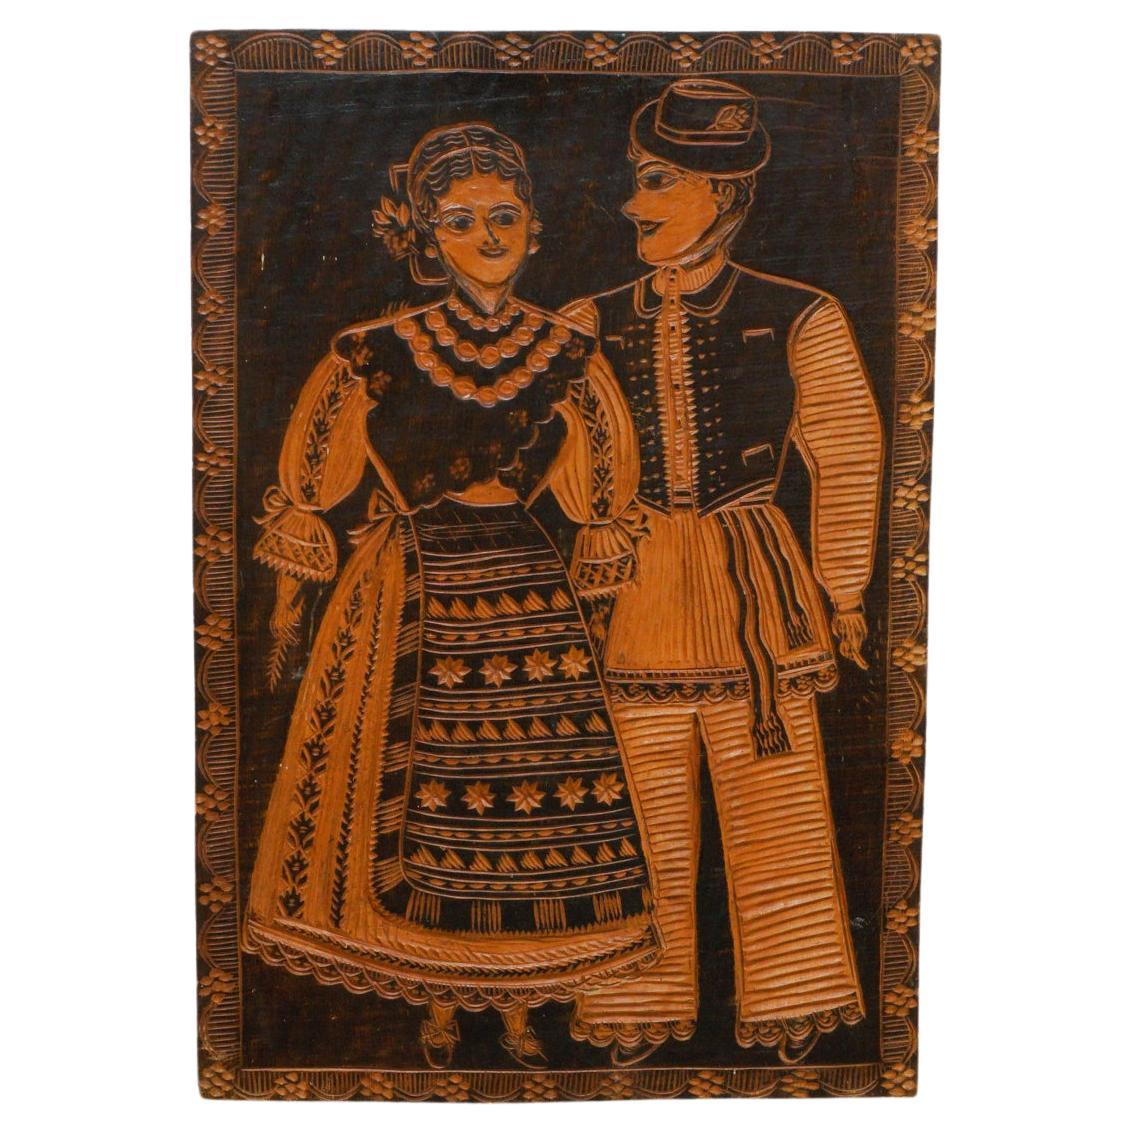 Traditional Rustic Wood Carved Artwork from Spain, circa 1920